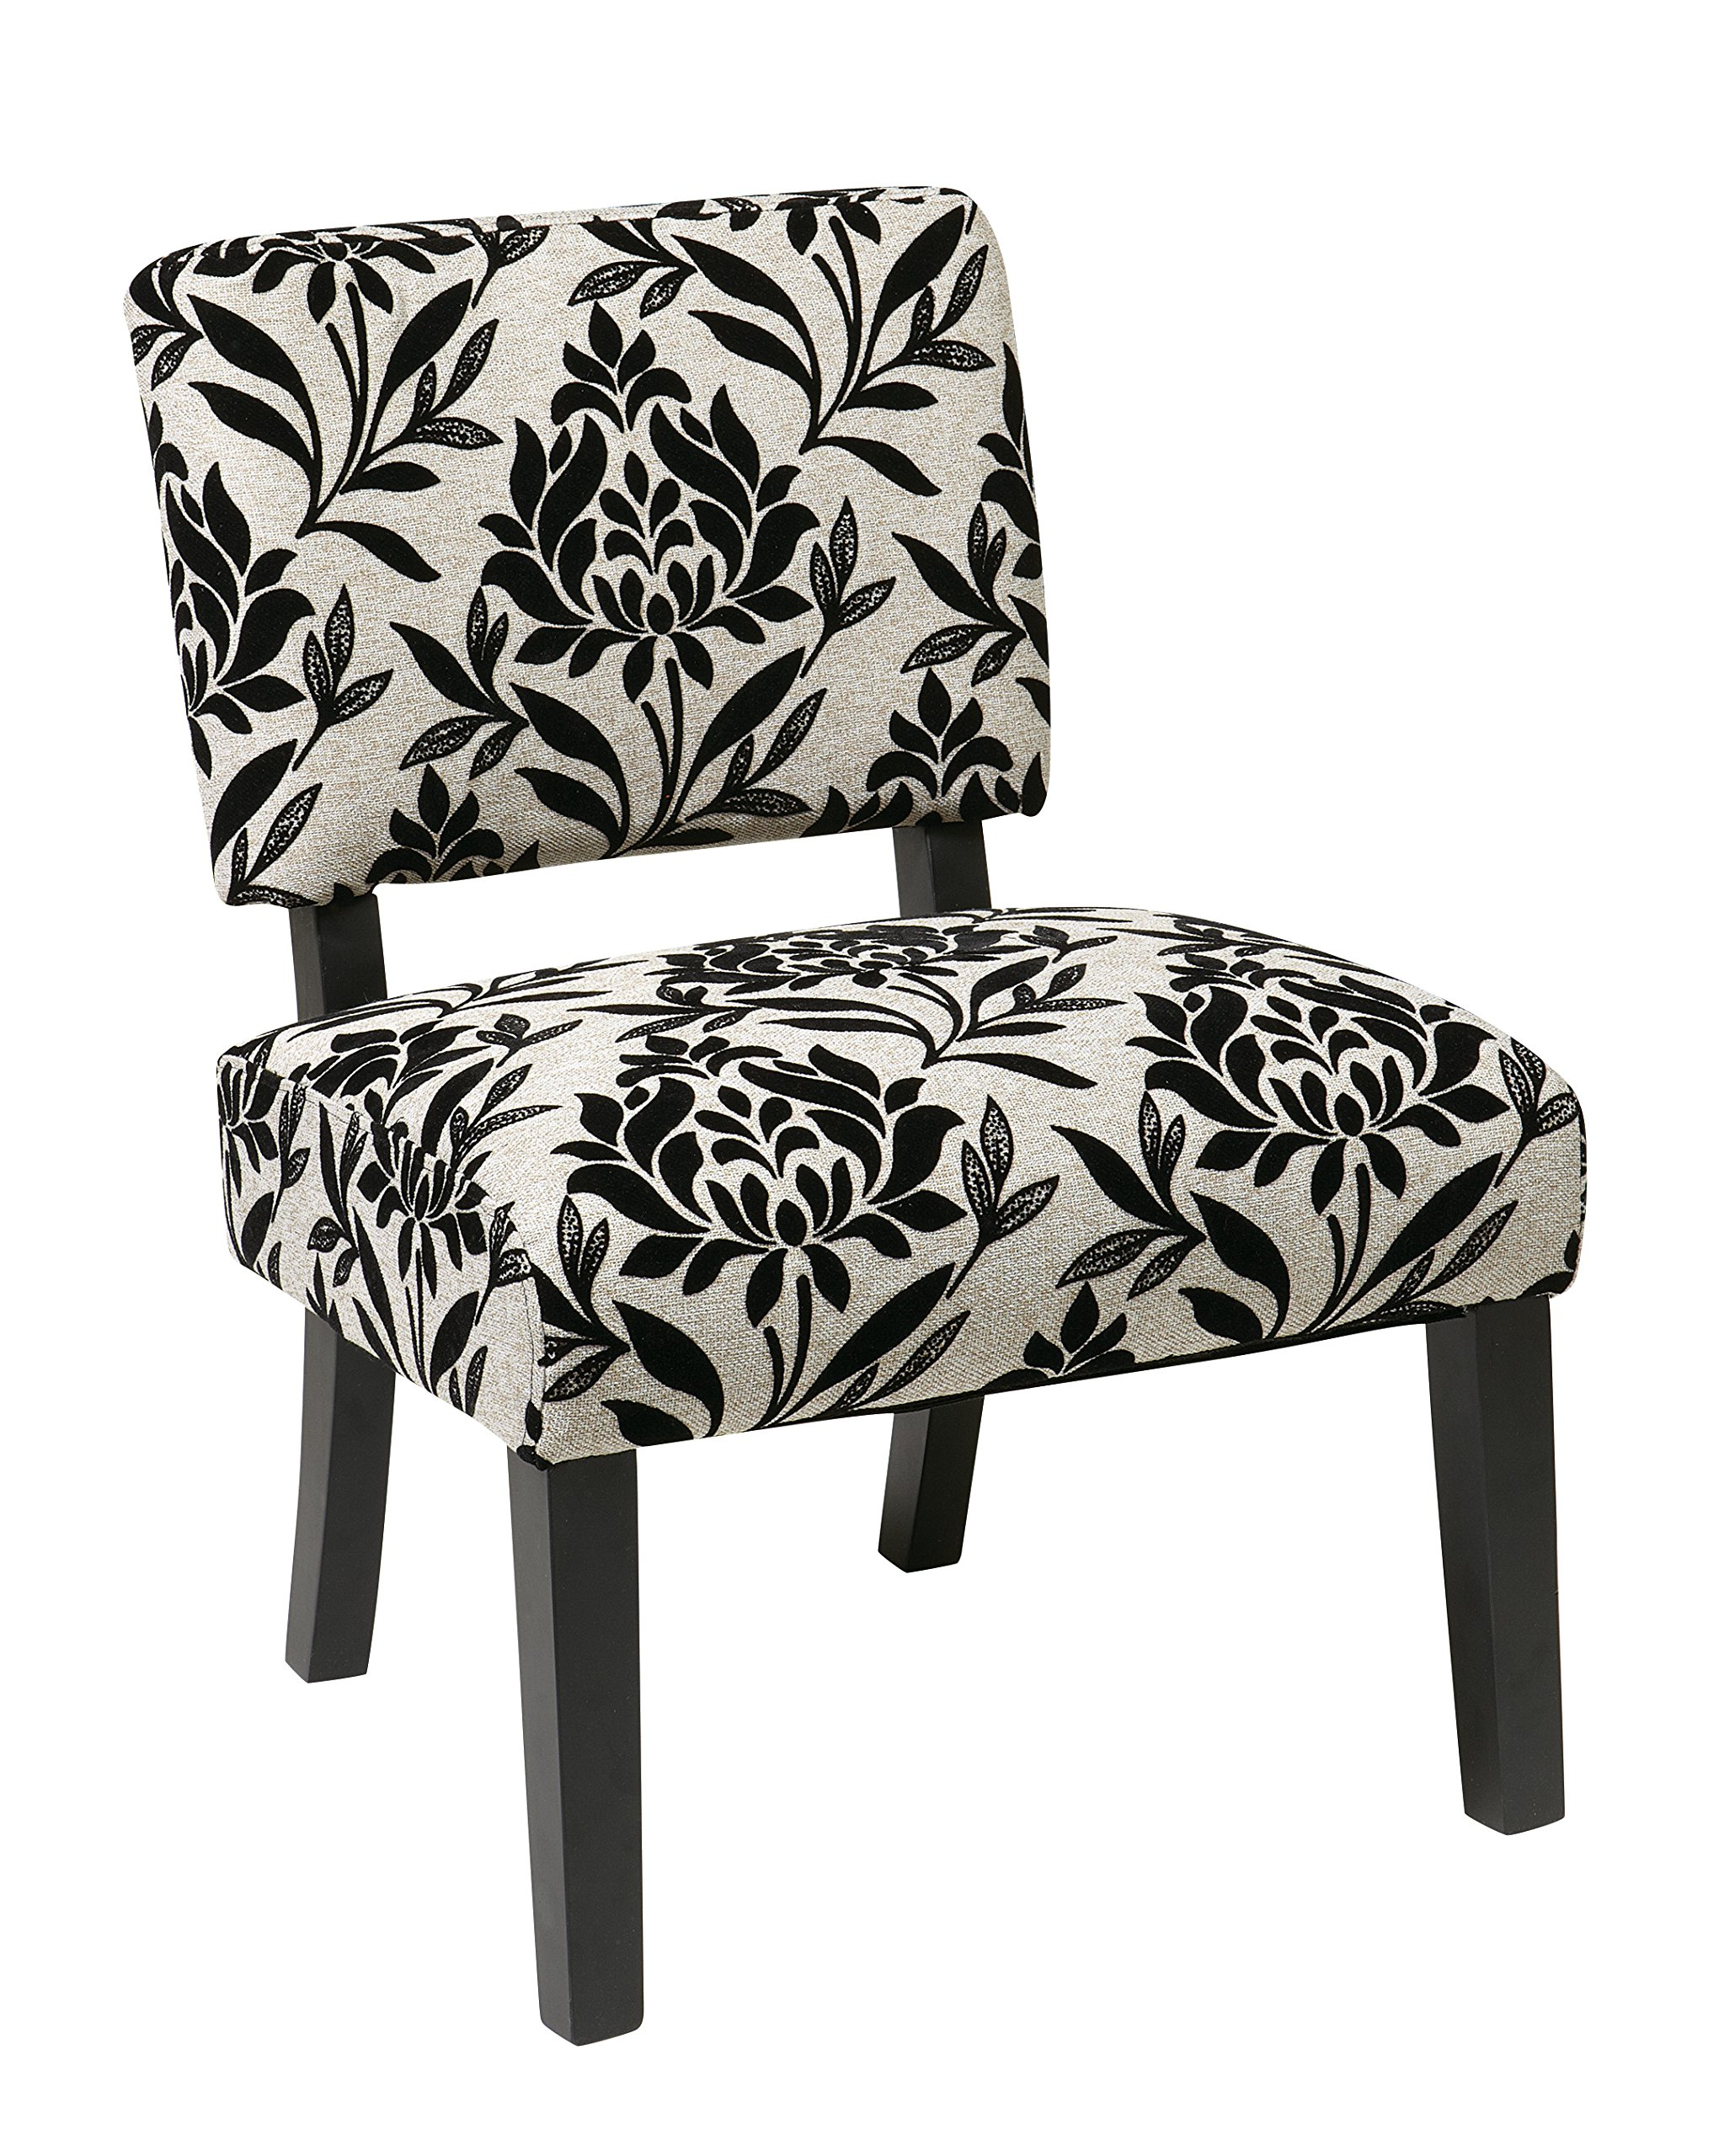 AVE SIX Jasmine Accent Chair with Espresso Finish Solid Wood Legs, Paradise